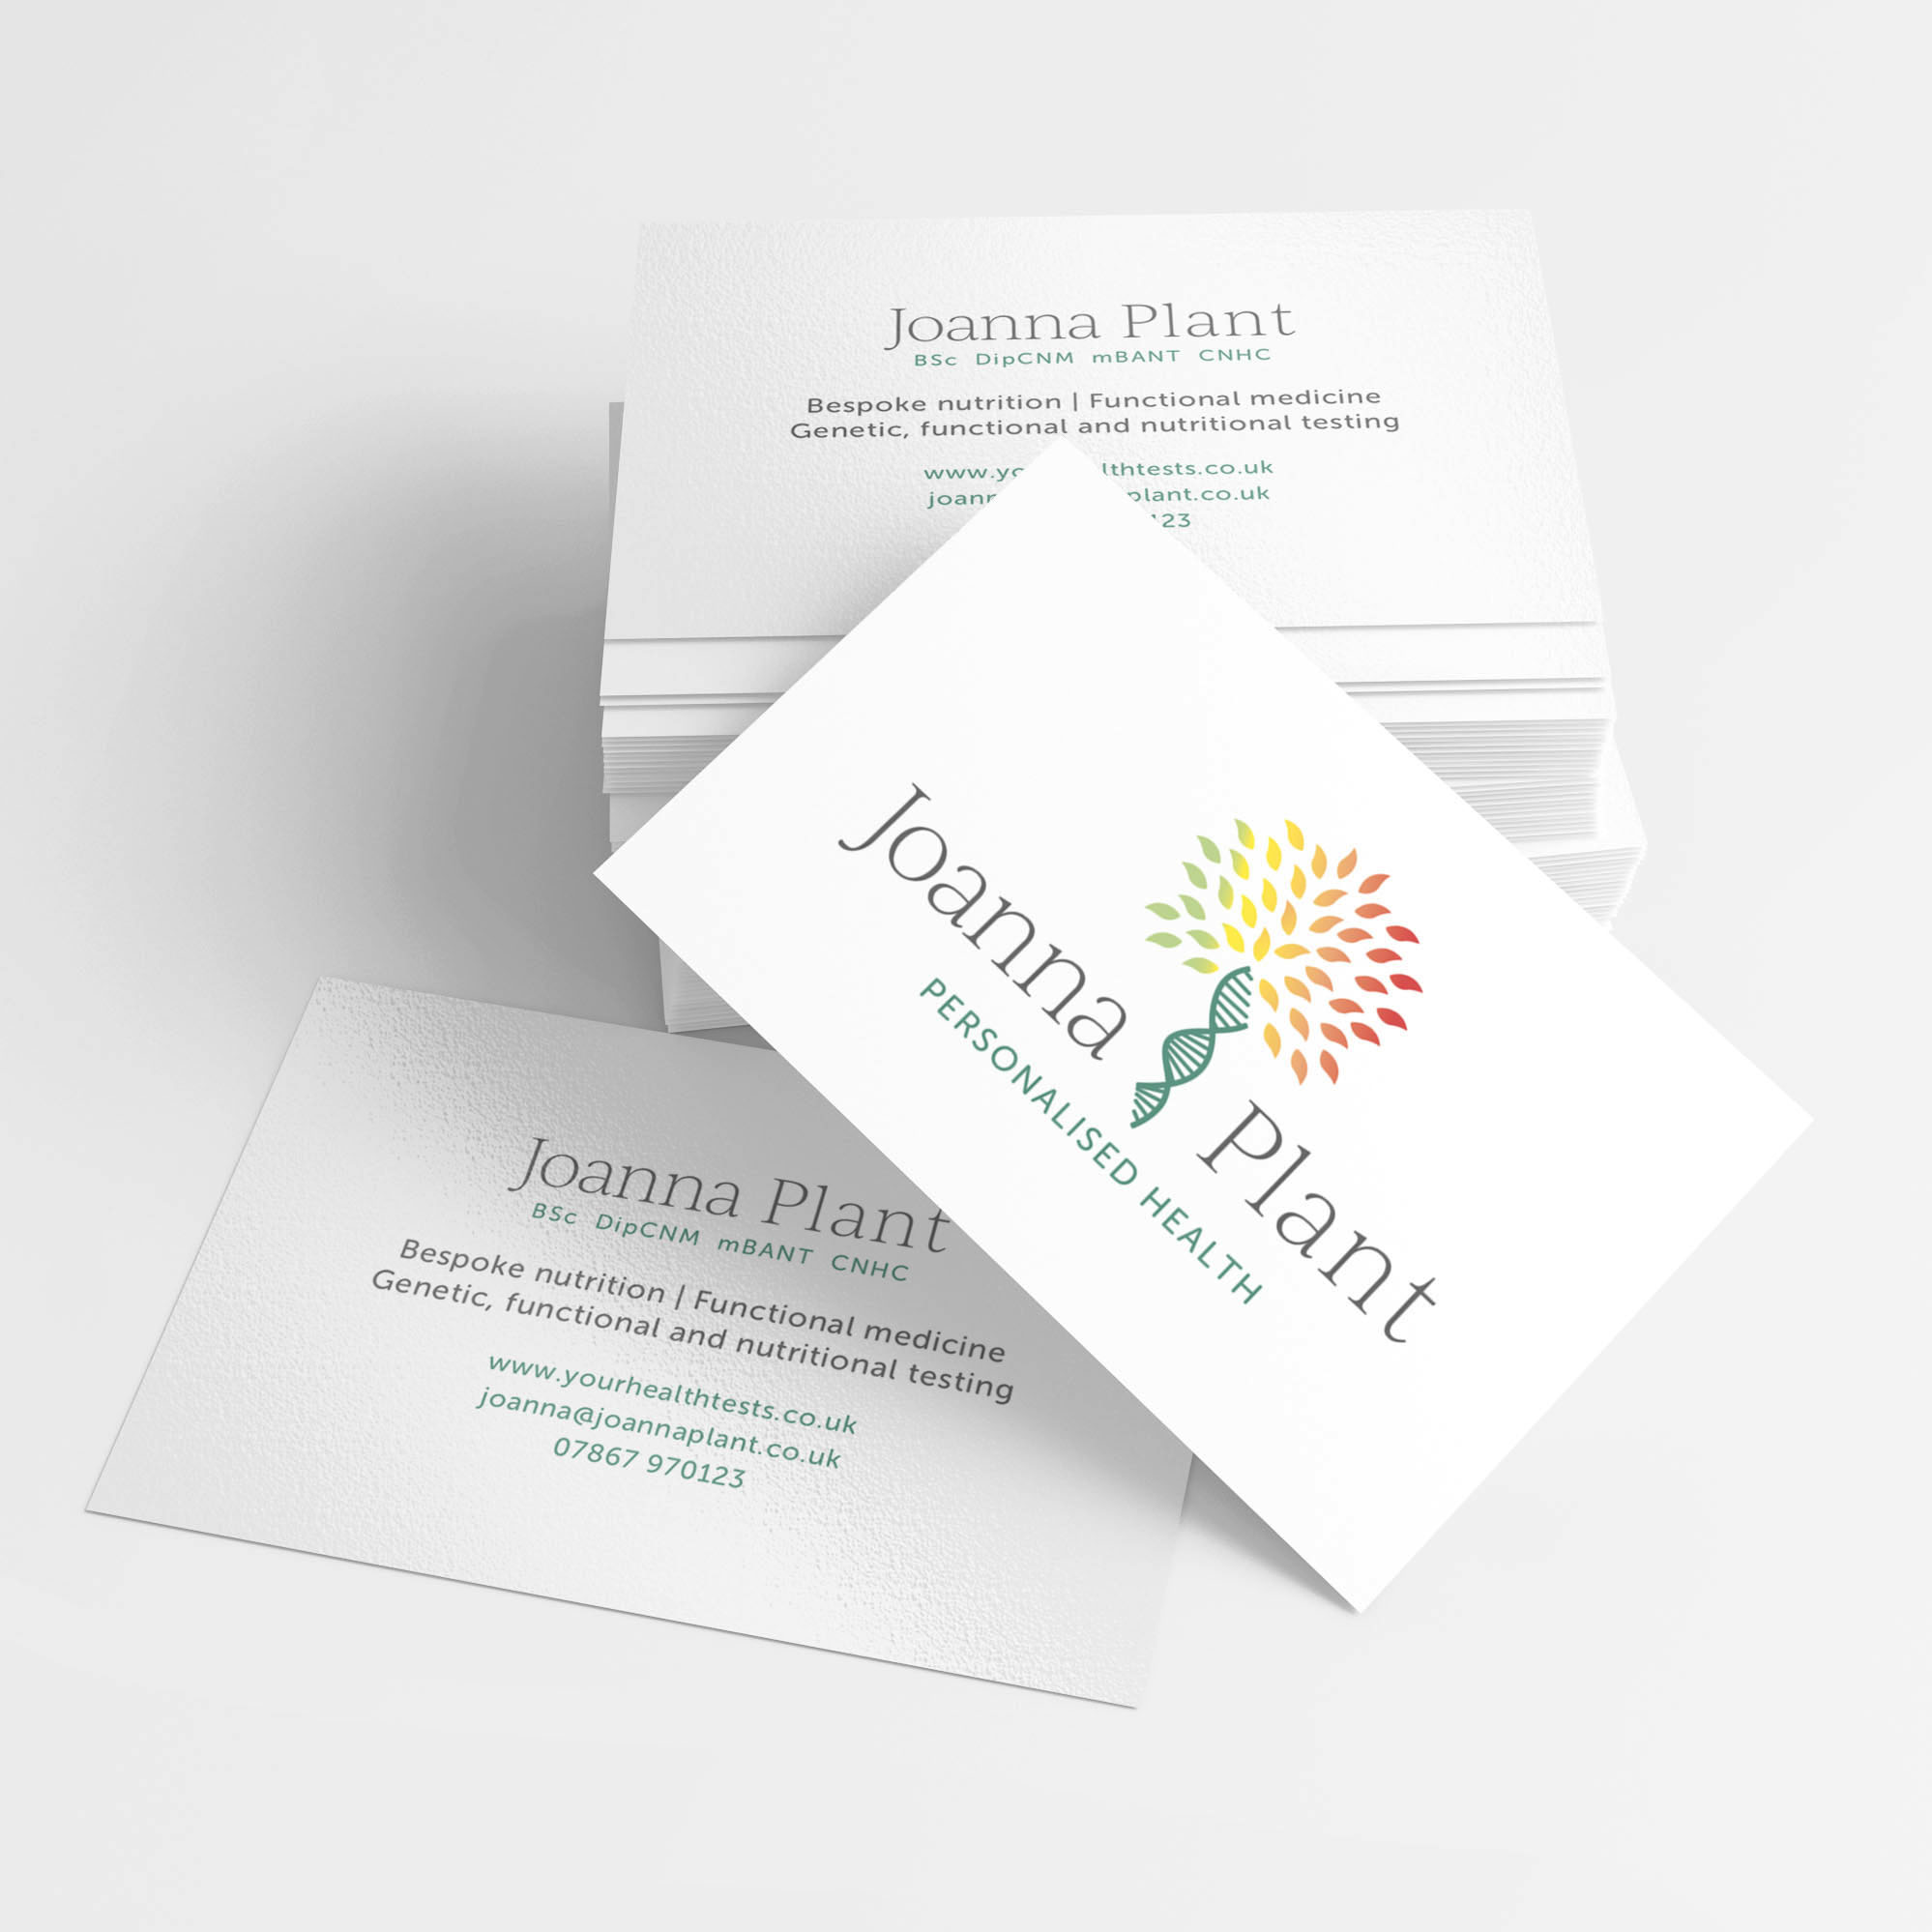 https://micheledonnison.co.uk/wp-content/uploads/2020/08/Joanna-Plant-Business-Cards.jpg